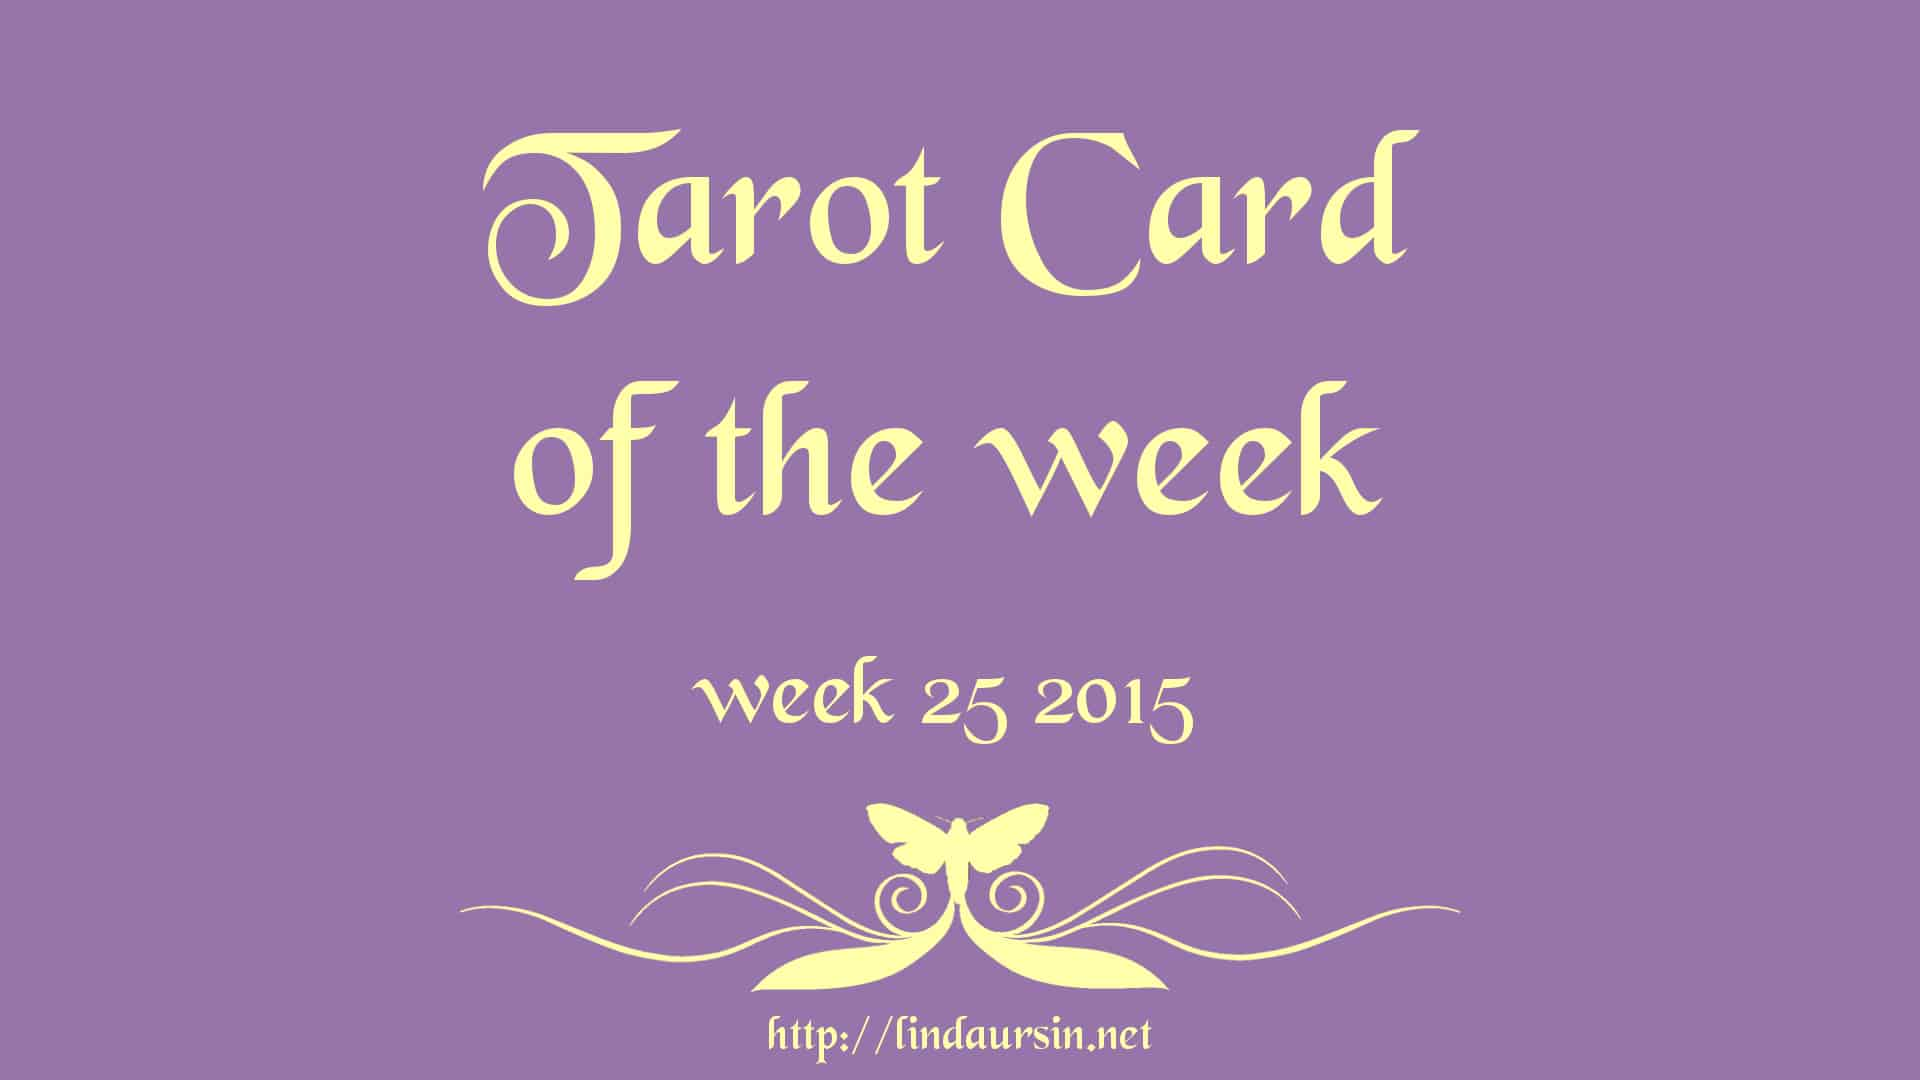 Your weekly Tarot card for week 25 2015